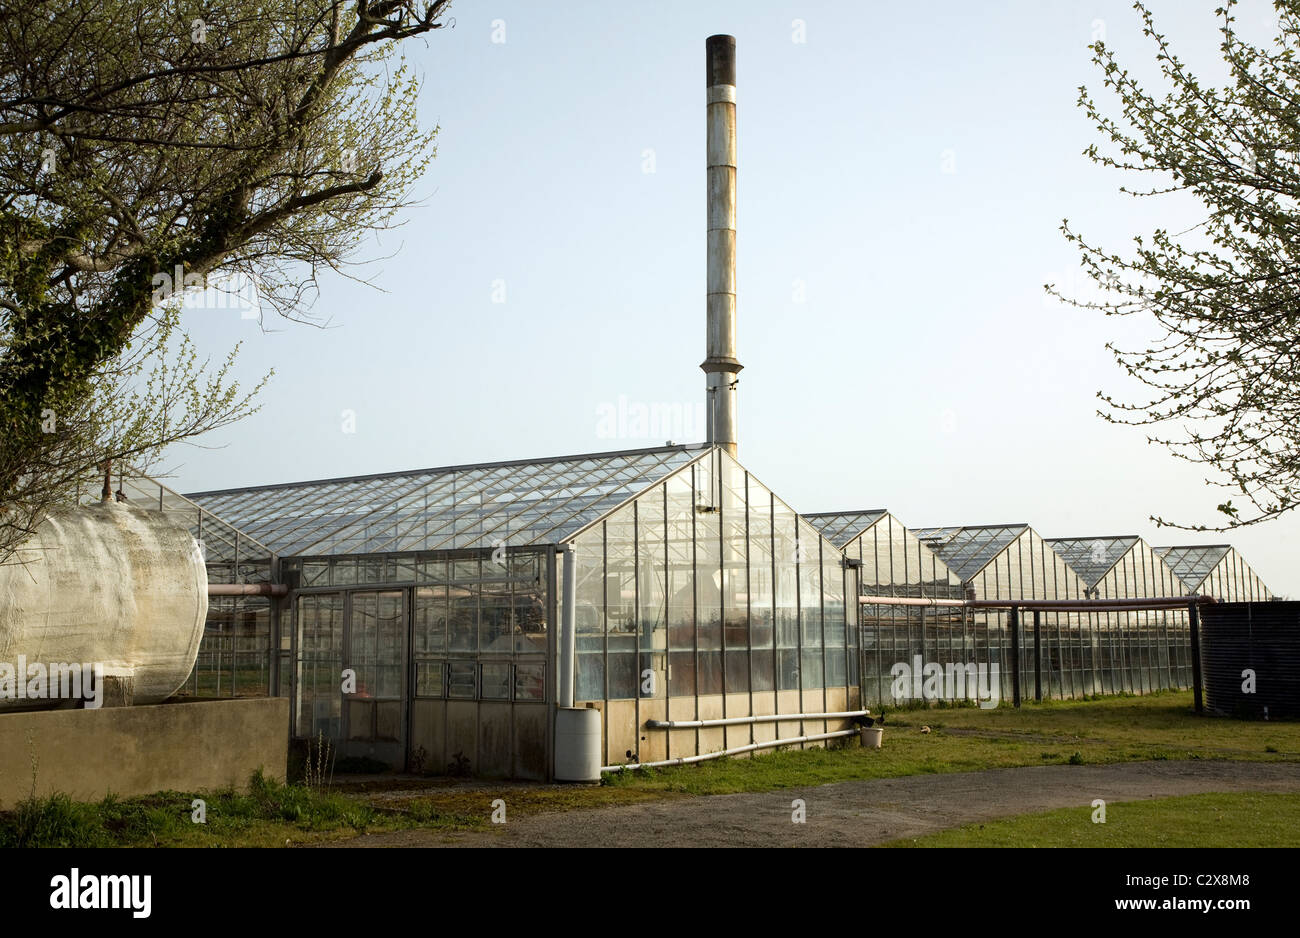 Glasshouses chimney plant nursery Vale Guernsey, Channel islands - Stock Image